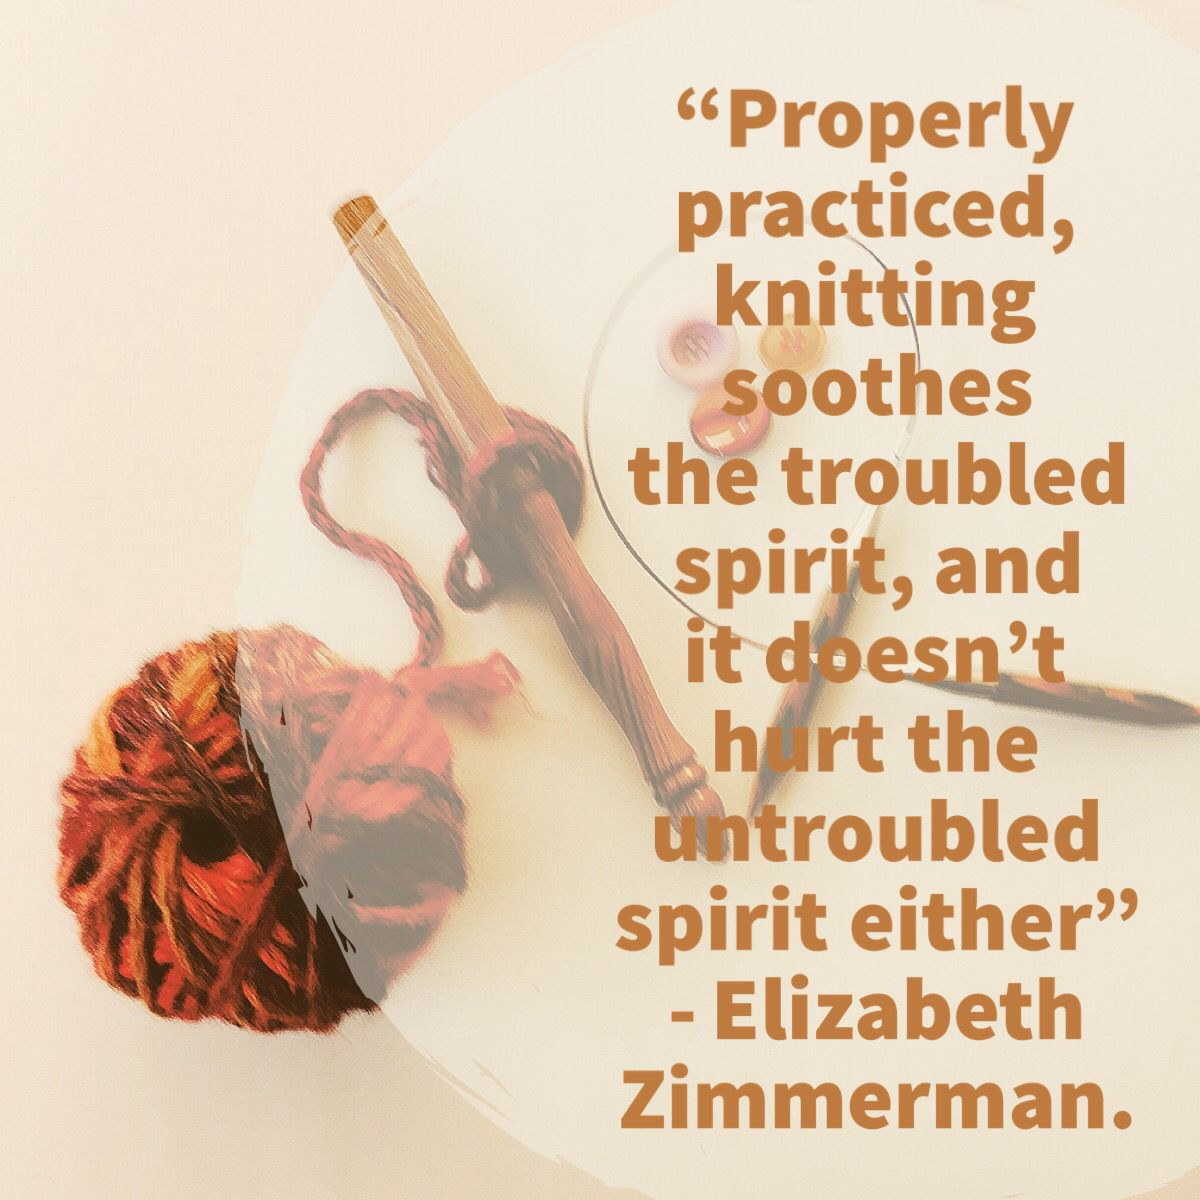 Knitting is good for the soul.